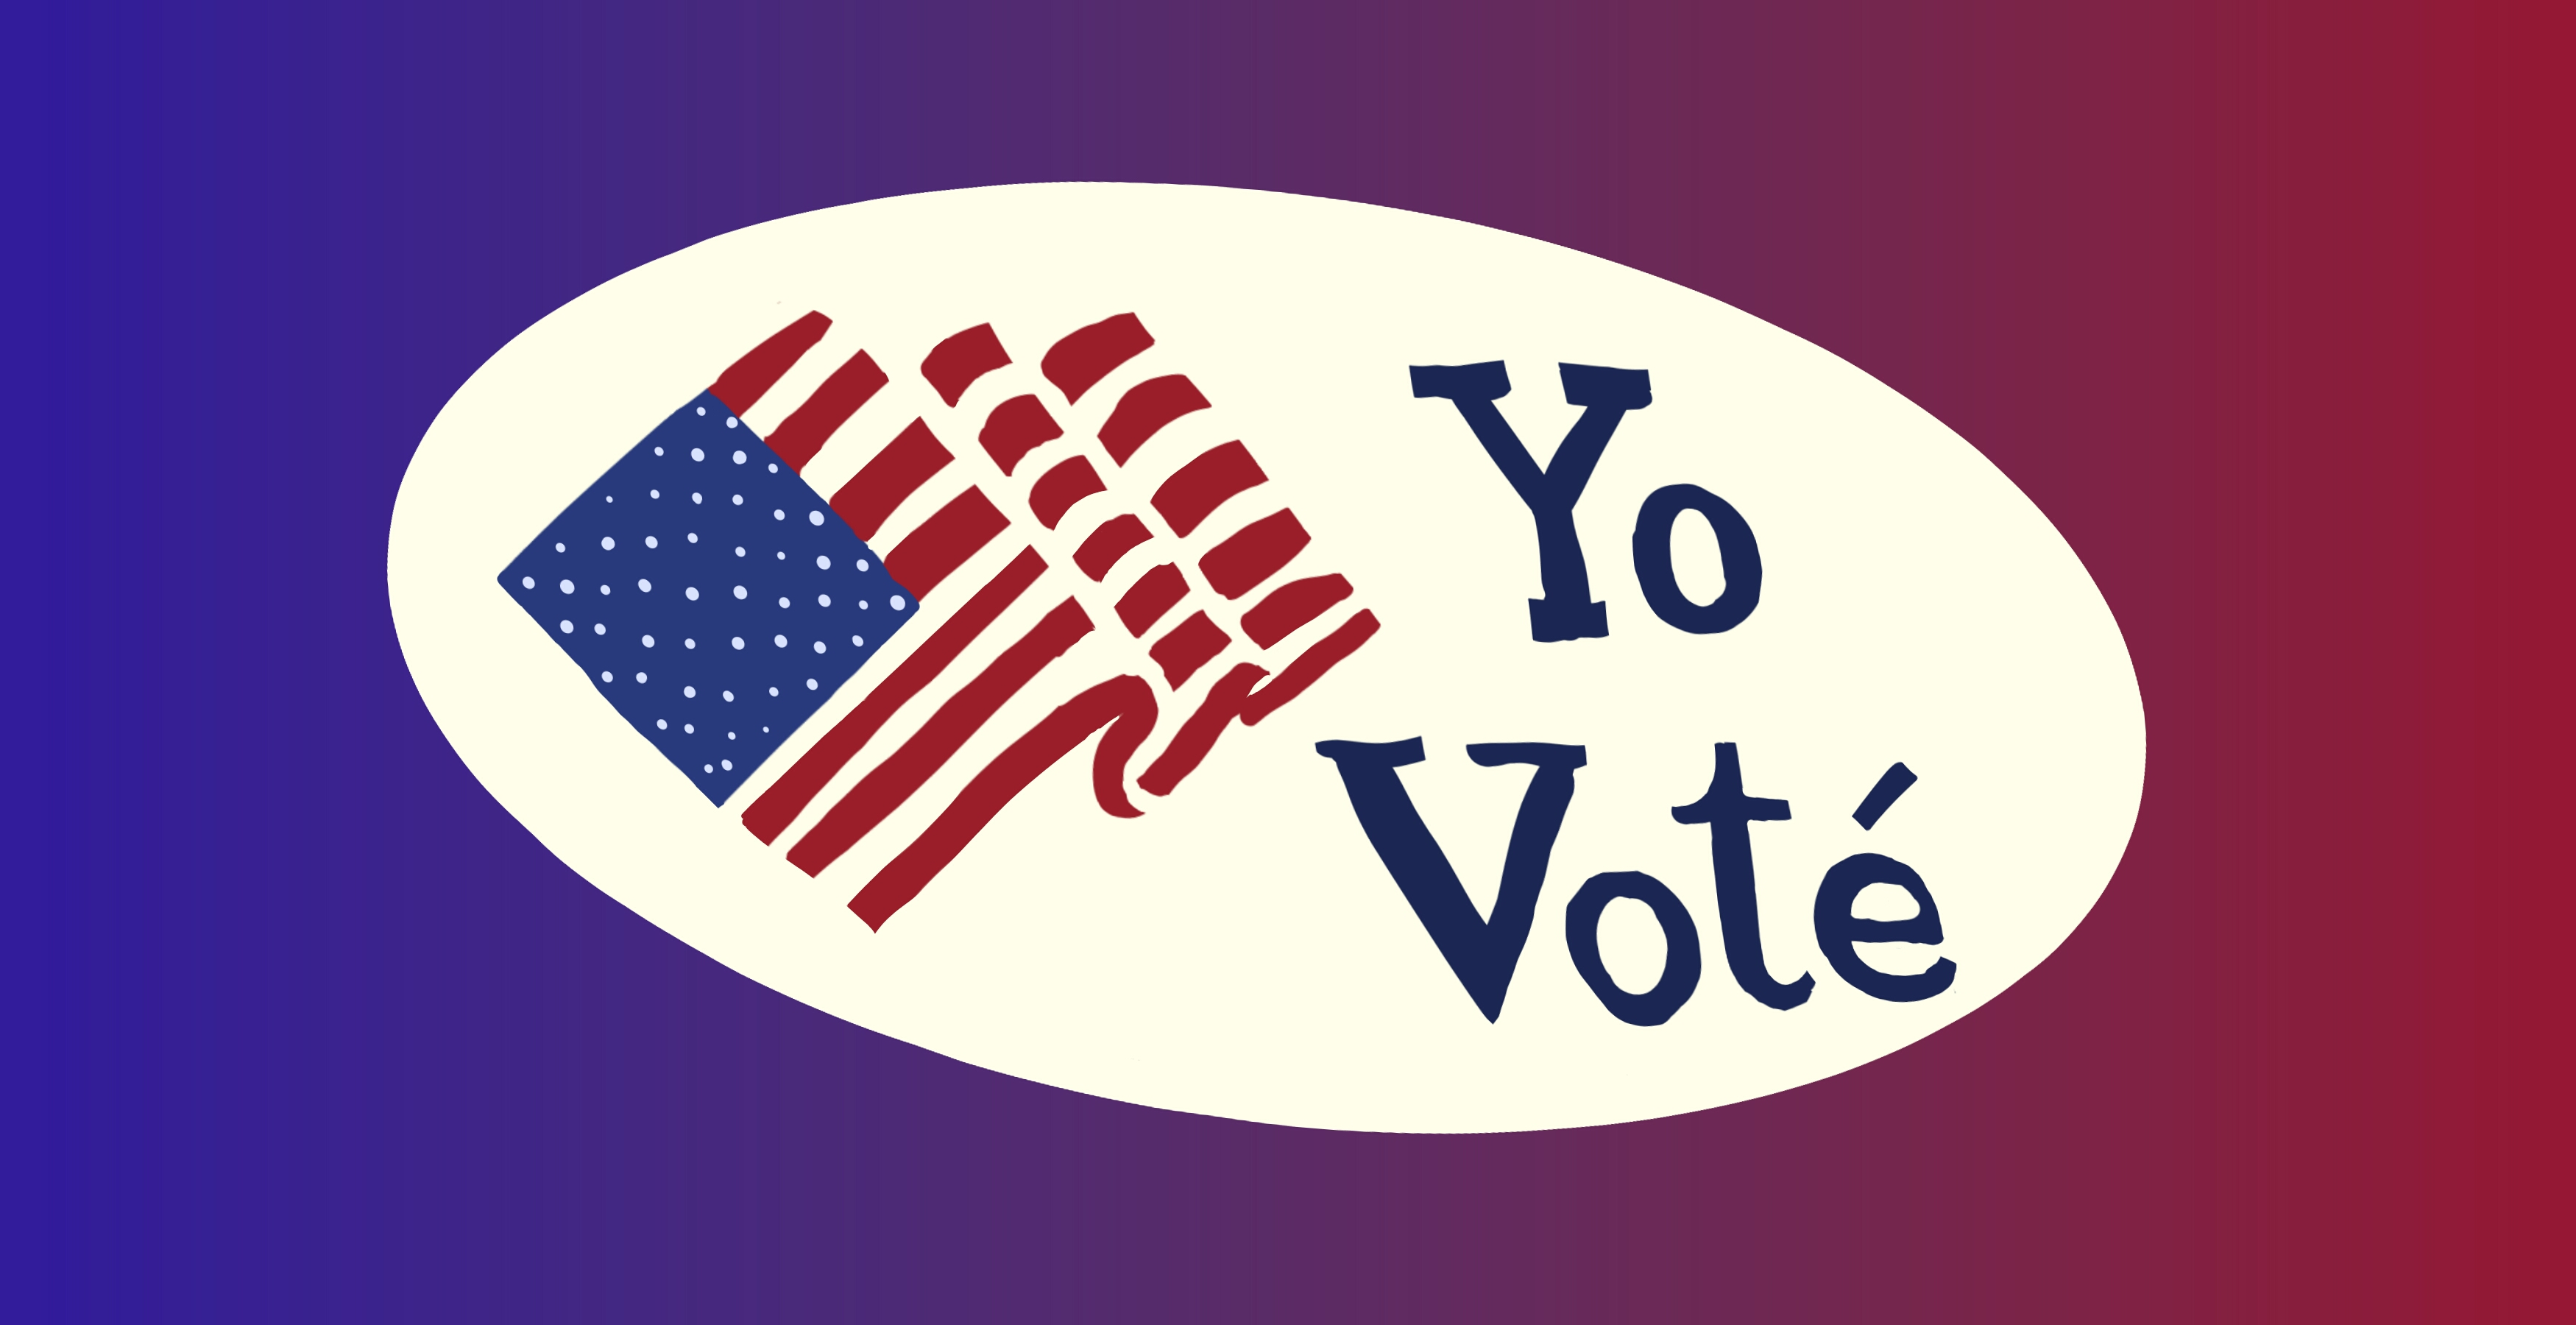 Latino Youth Vote 2016